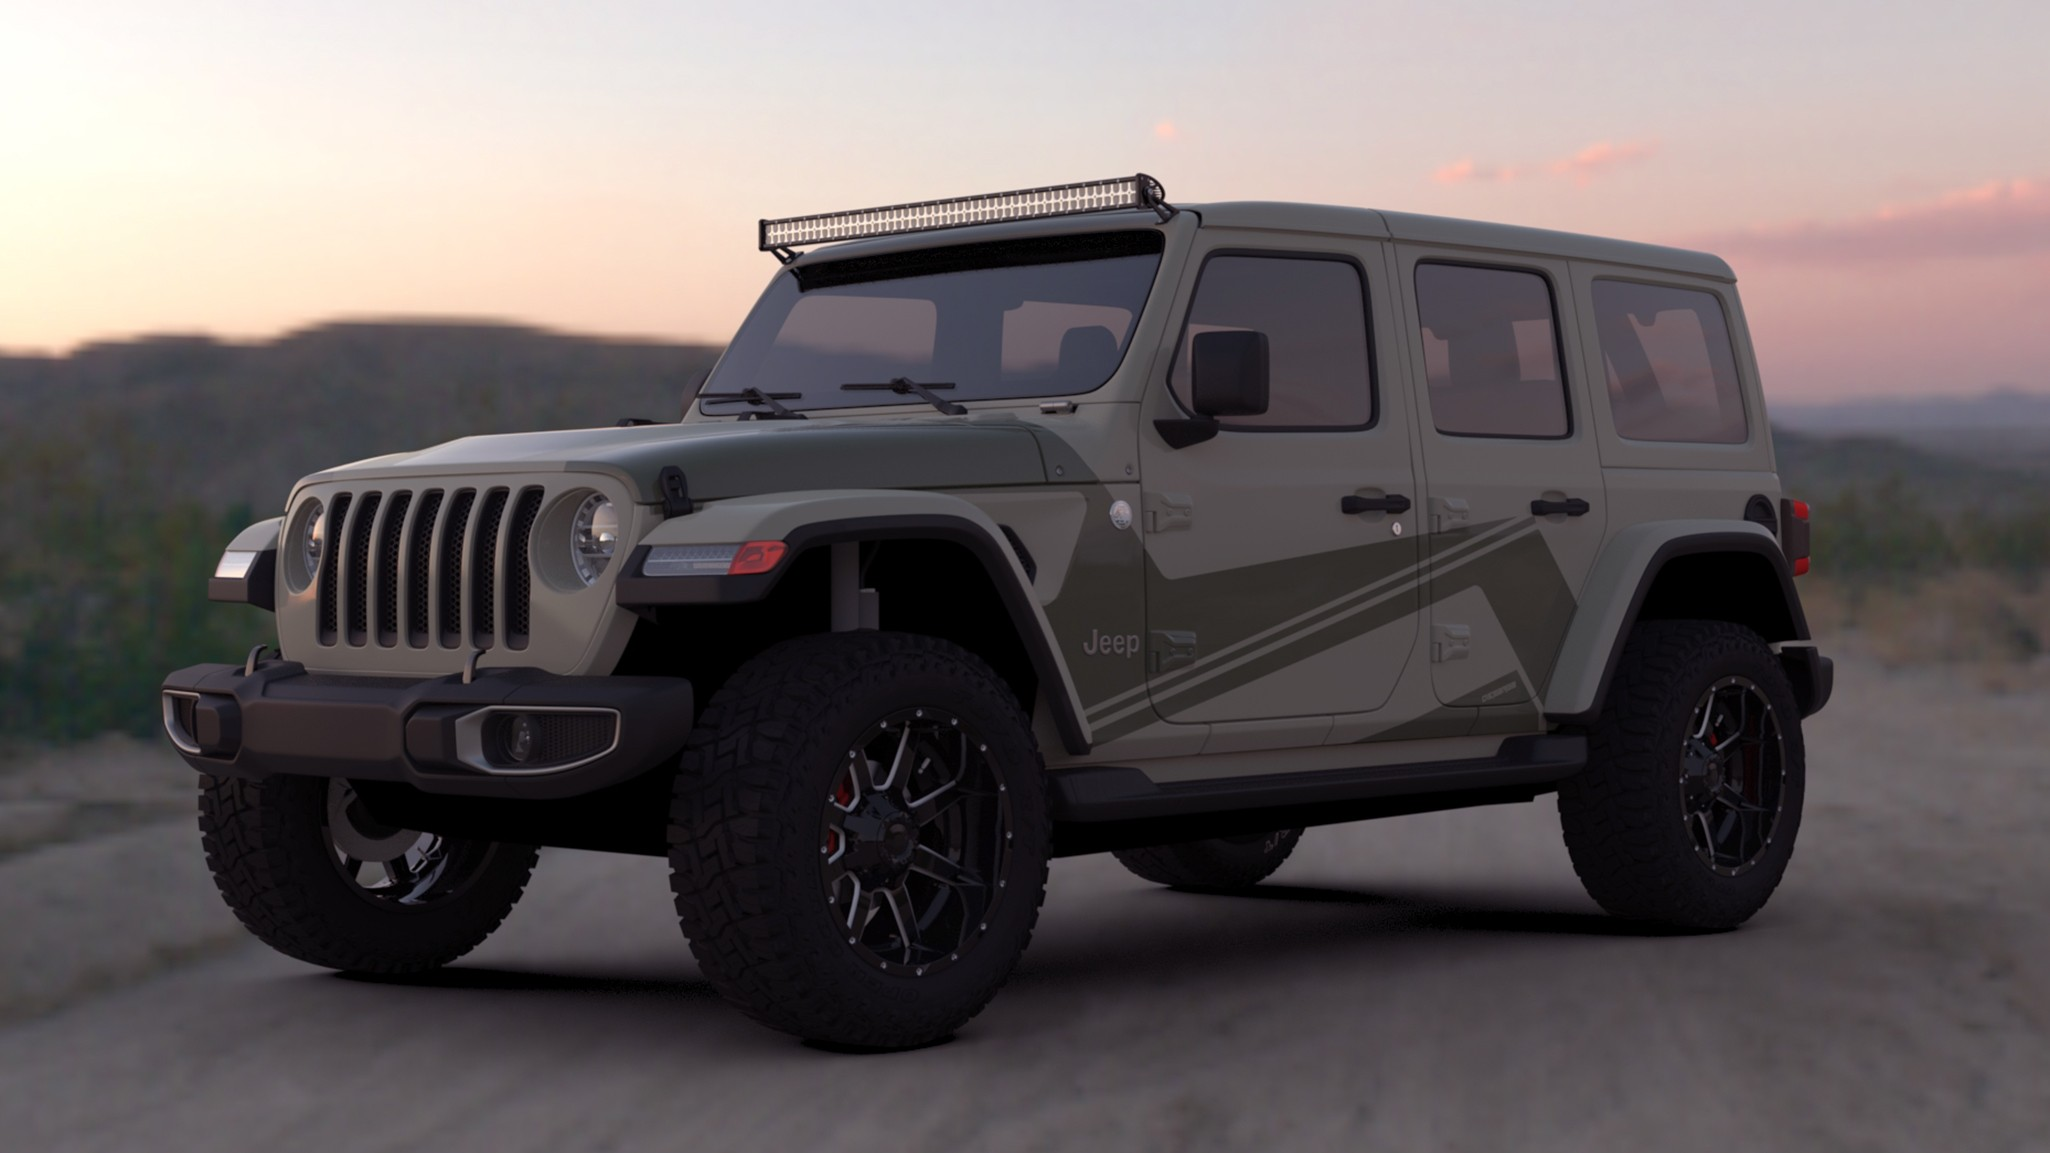 Disperse the new line of Jeep Wrangler Graphics from Raceskinz®